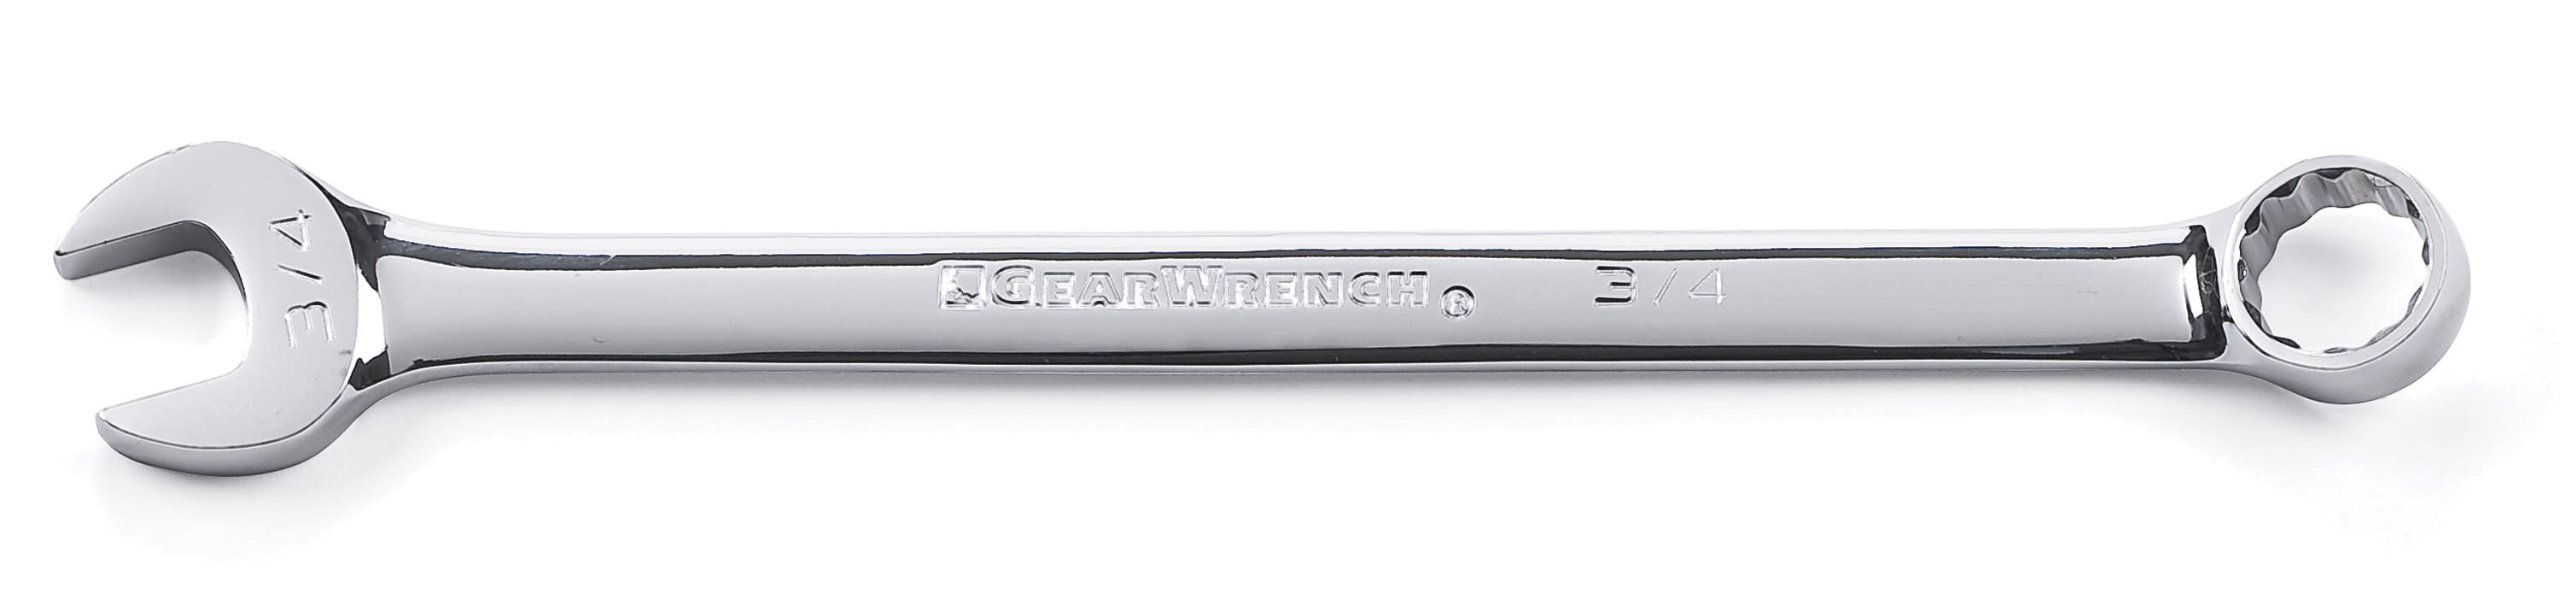 GearWrench 81656 1/2-Inch Long Pattern Combination Wrench